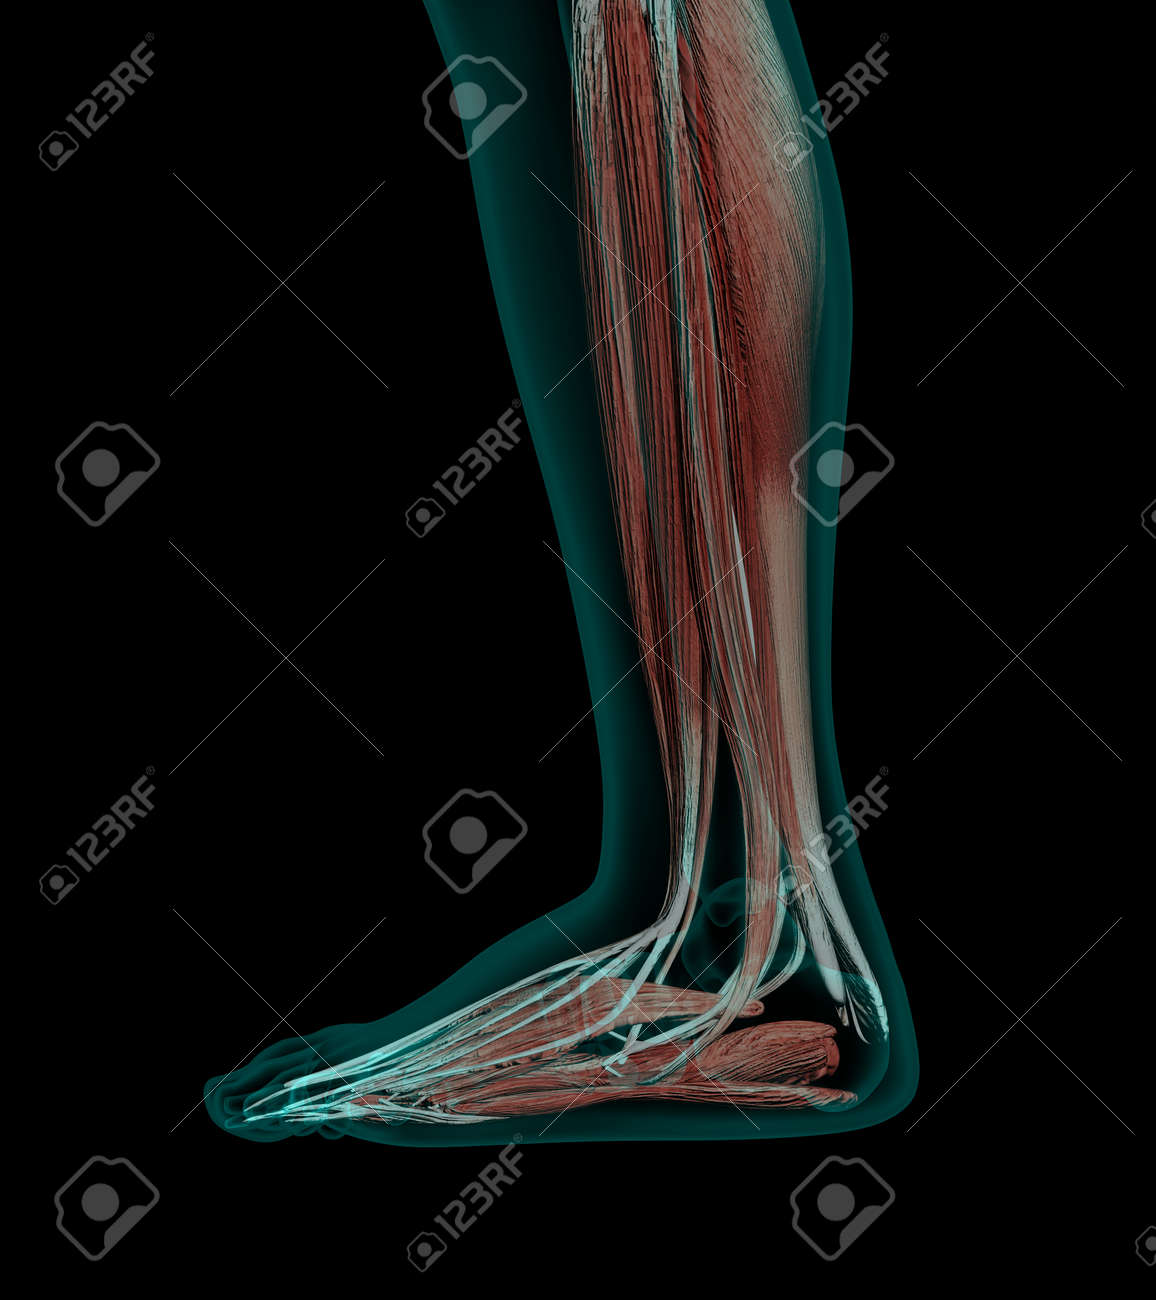 Human Anatomy Muscles Of A Leg With Bones X-ray Wiev Stock Photo ...